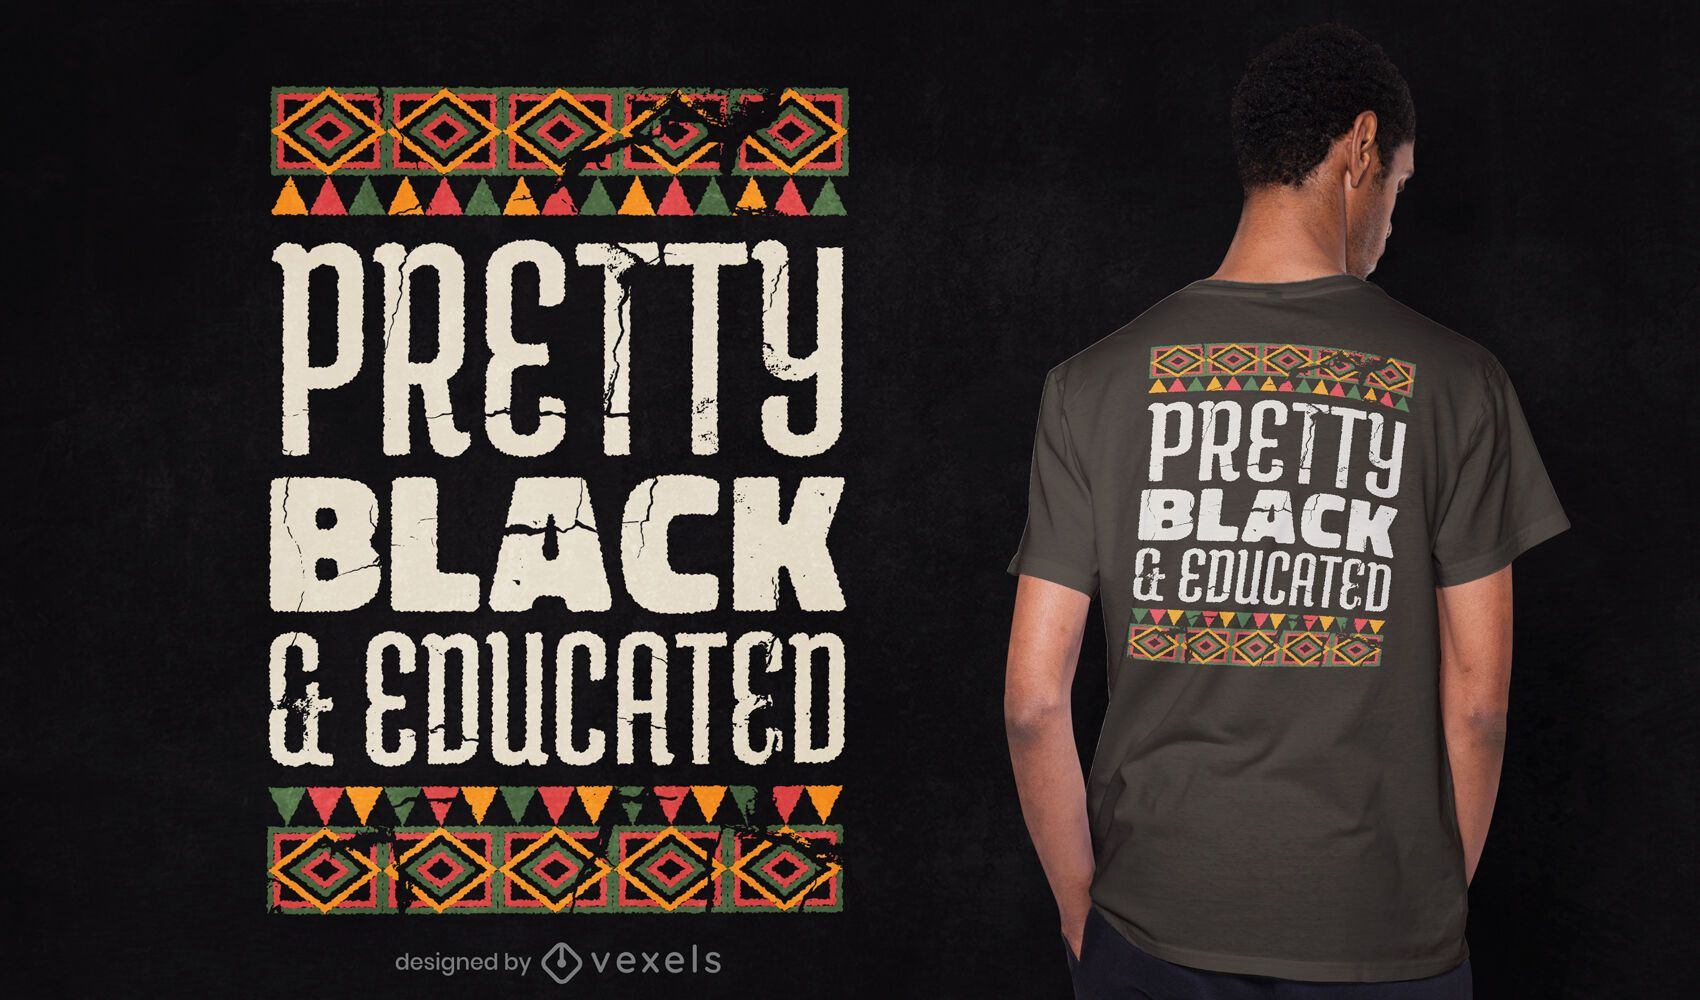 Pretty black and educated t-shirt design